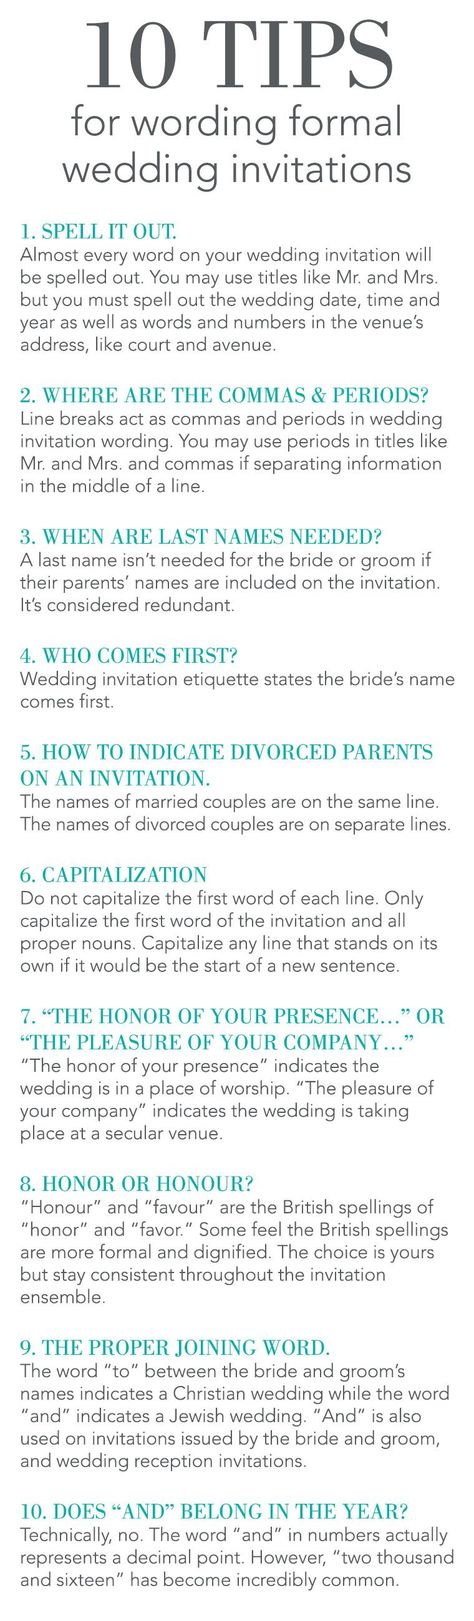 Hosting a formal wedding, but are uncertain how to word your wedding invitations? Check out these 10 Tips for Wording Formal Wedding Invitations on the Invitations By Dawn blog!